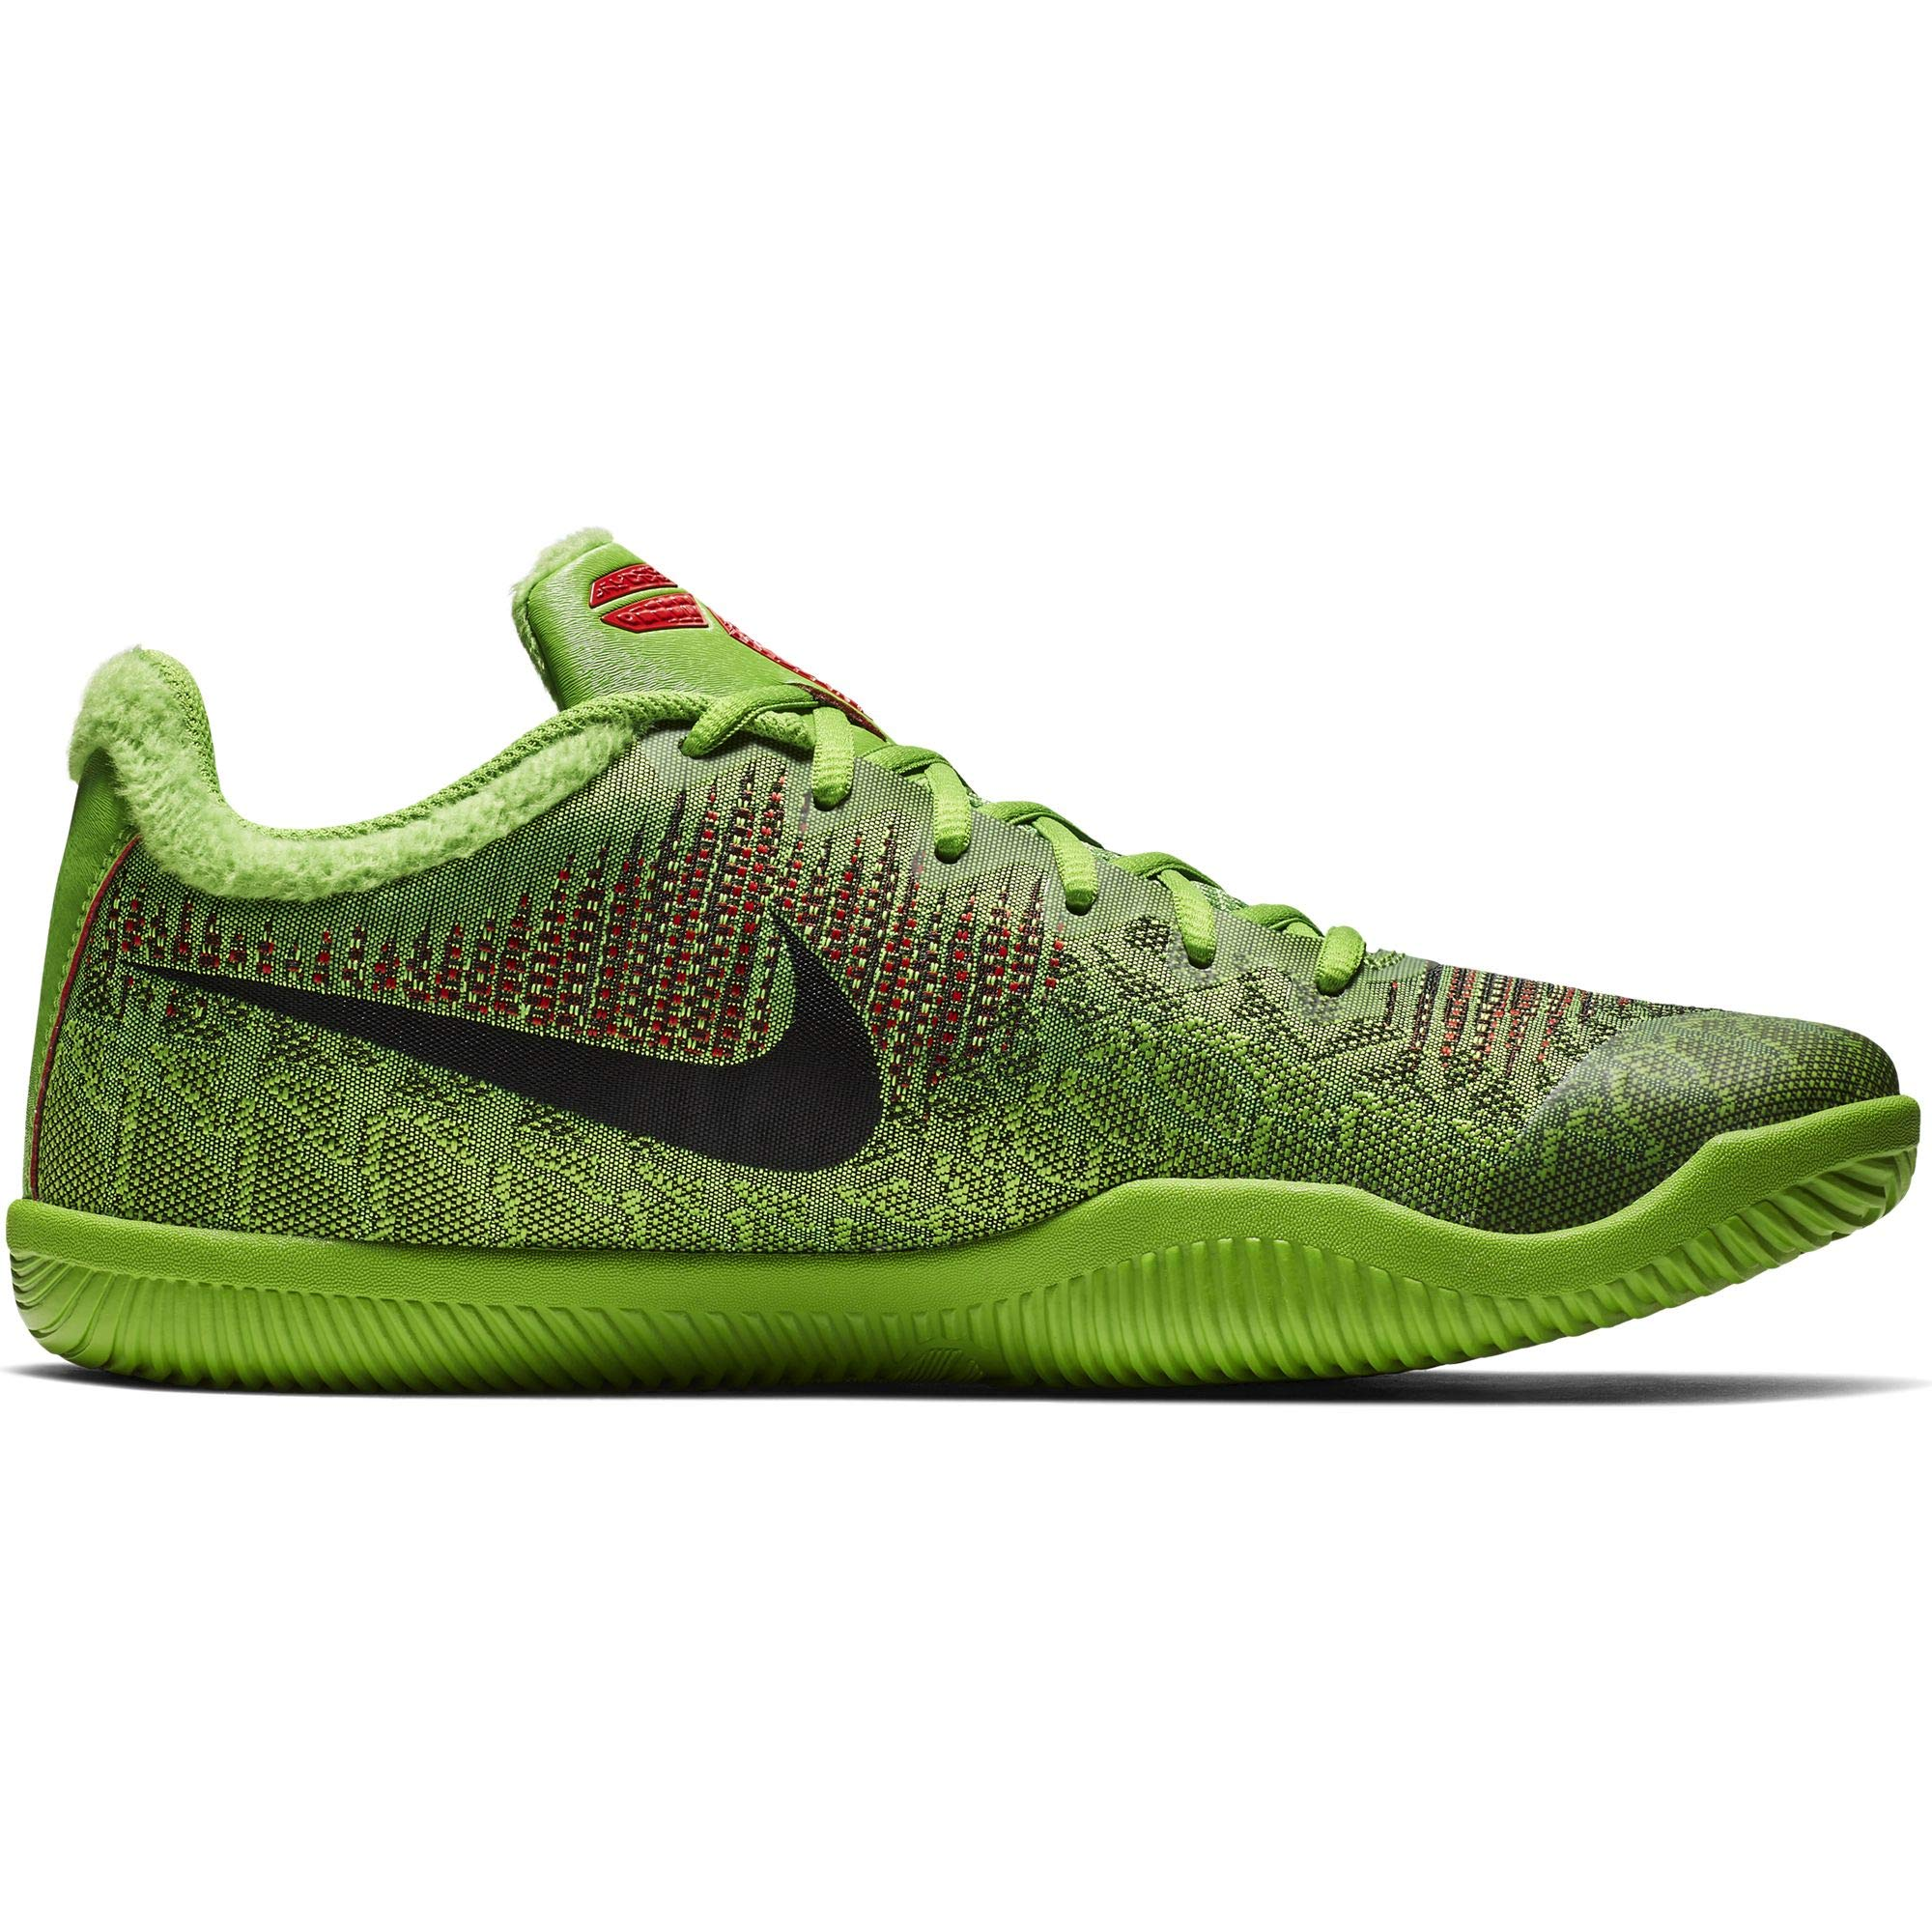 size 40 5a05c c710e Galleon - Nike Men s Mamba Rage Basketball Shoes Electric Green Black Volt  Size 11 M US